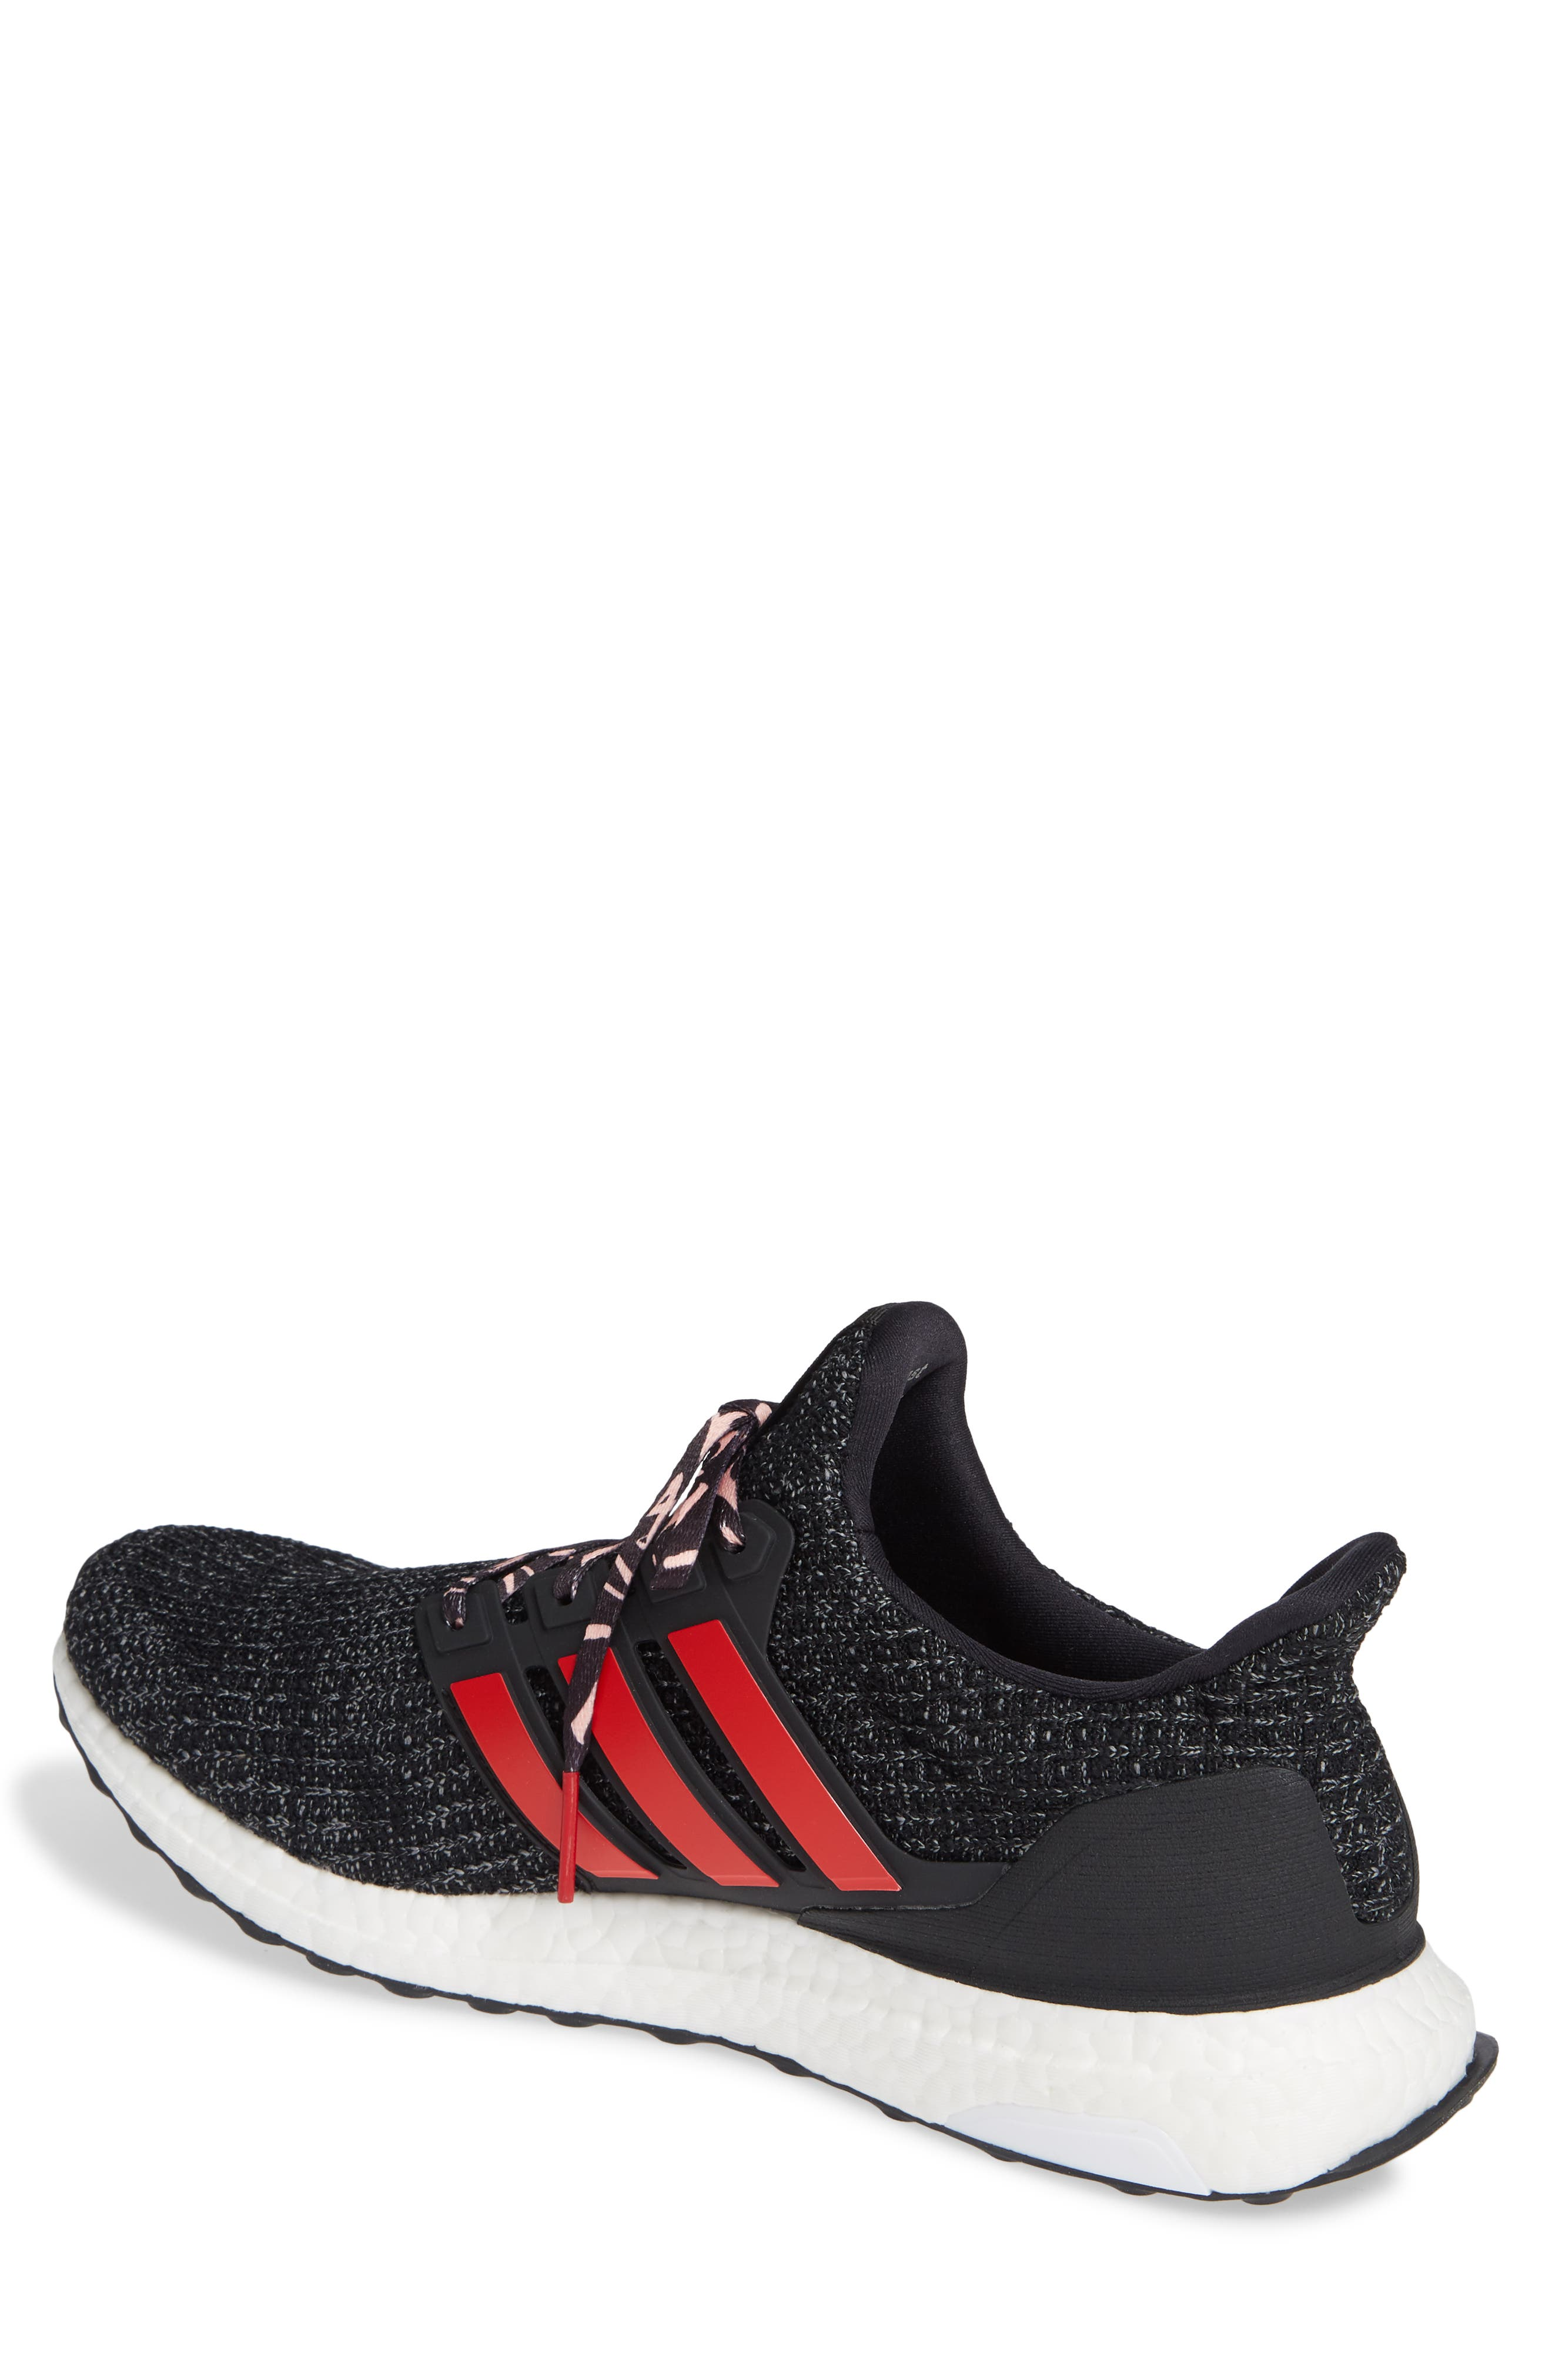 ADIDAS, 'UltraBoost' Running Shoe, Alternate thumbnail 2, color, CORE BLACK/ SCARLET/ GREY